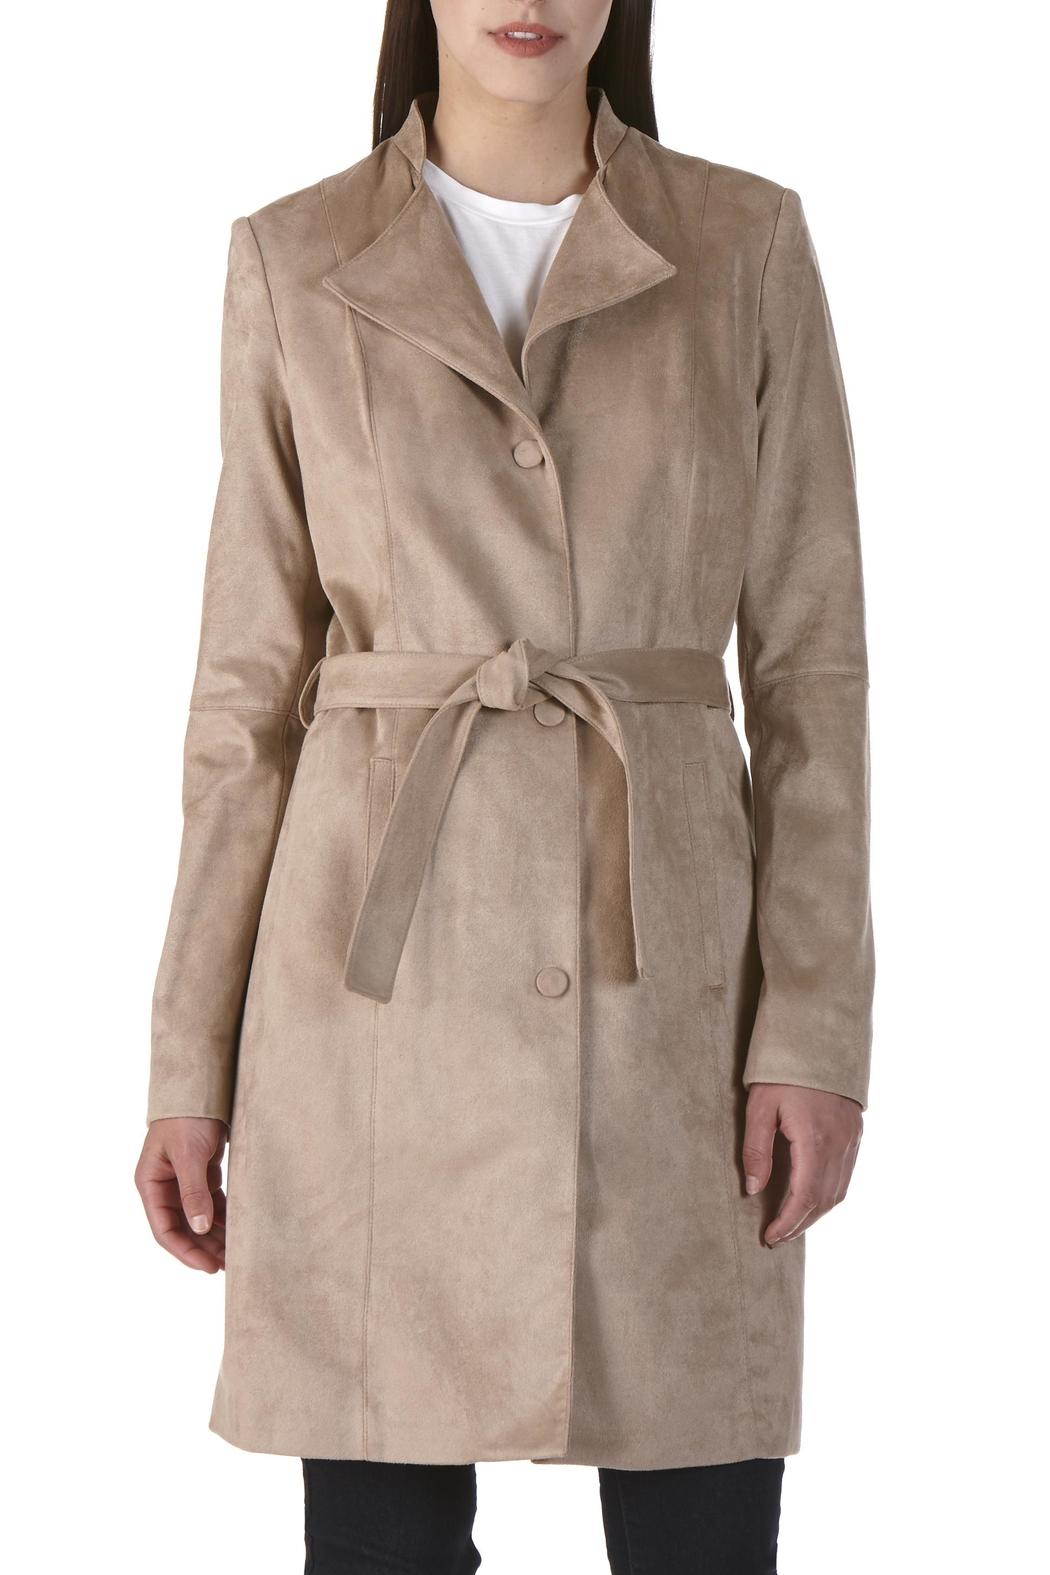 Nuage Suede Trench Coat - Main Image